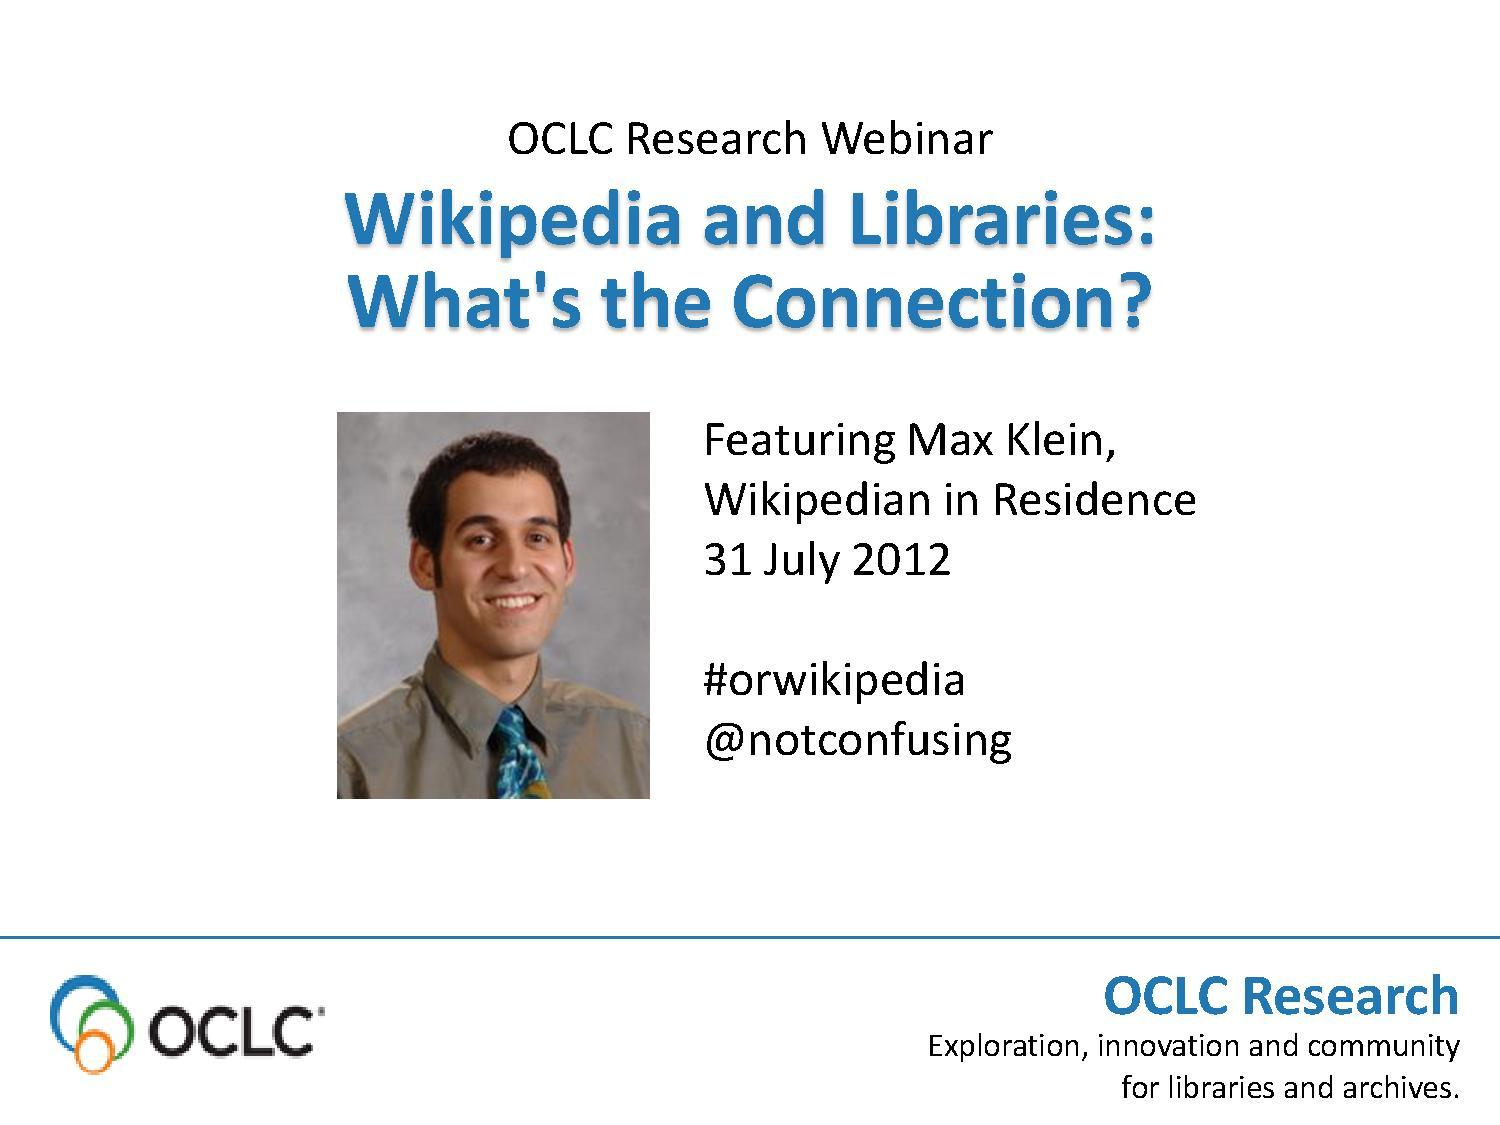 Wikipedia and Libraries - The Connection